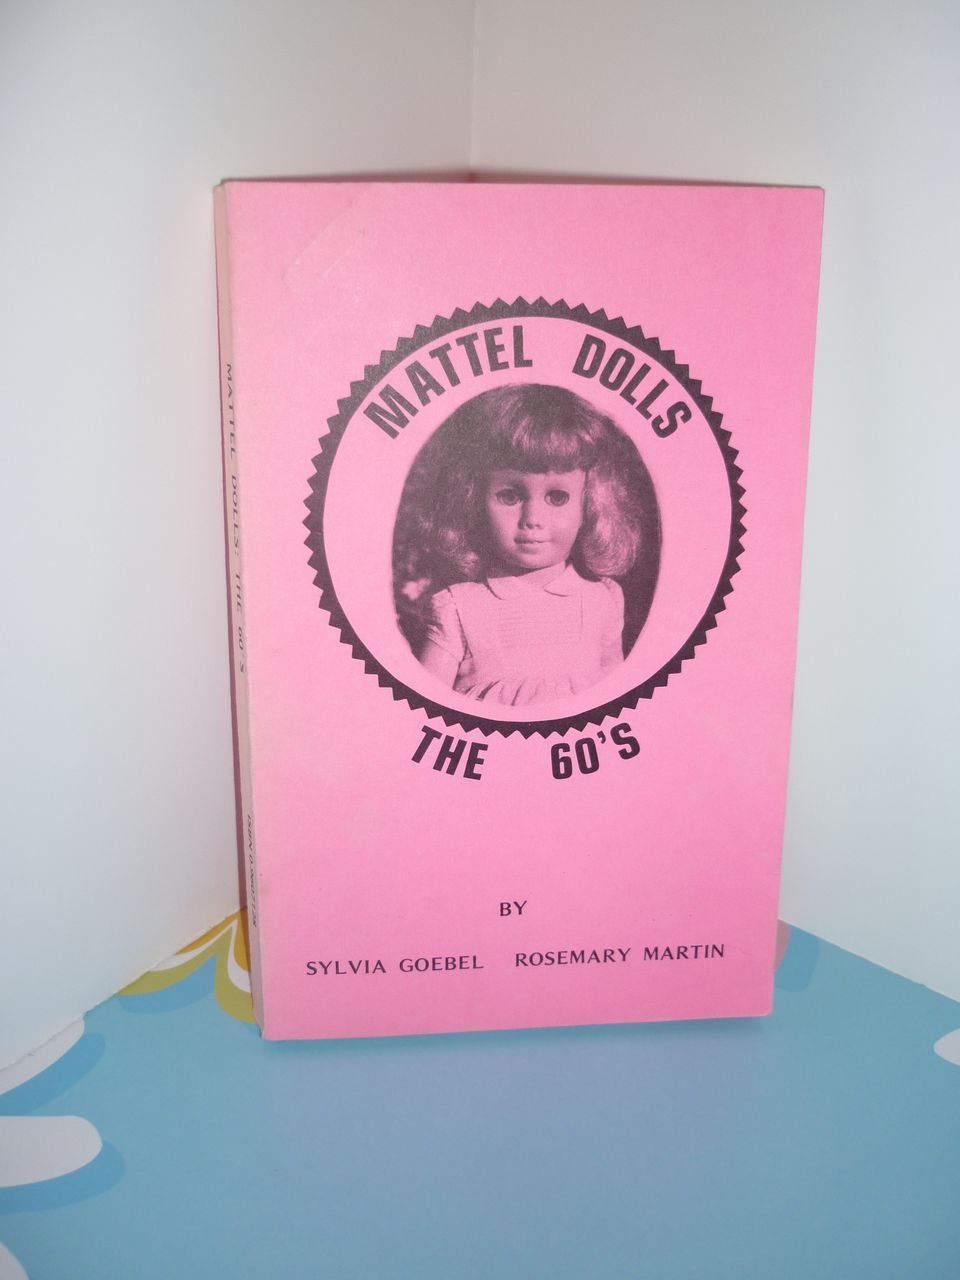 Mattel Dolls of the 60's Book- Sylvia Goebel and Rosemary Martin